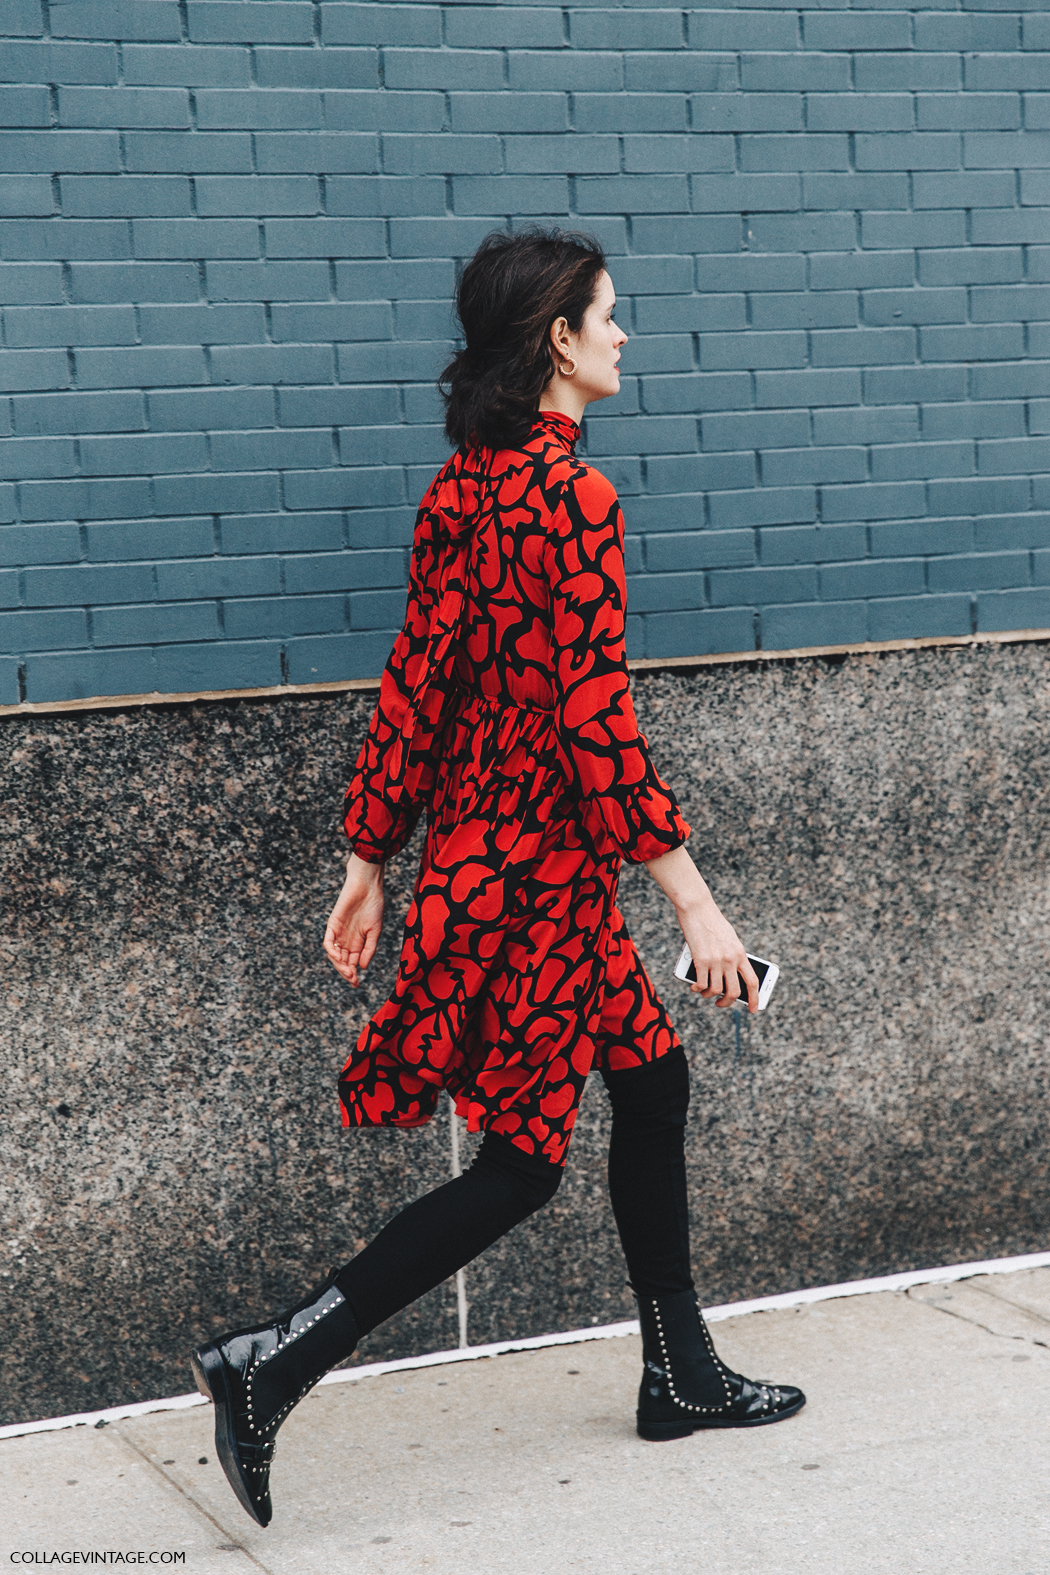 NYFW-New_York_Fashion_Week-Fall_Winter-17-Street_Style-Red_Dress-Michael_Kors-